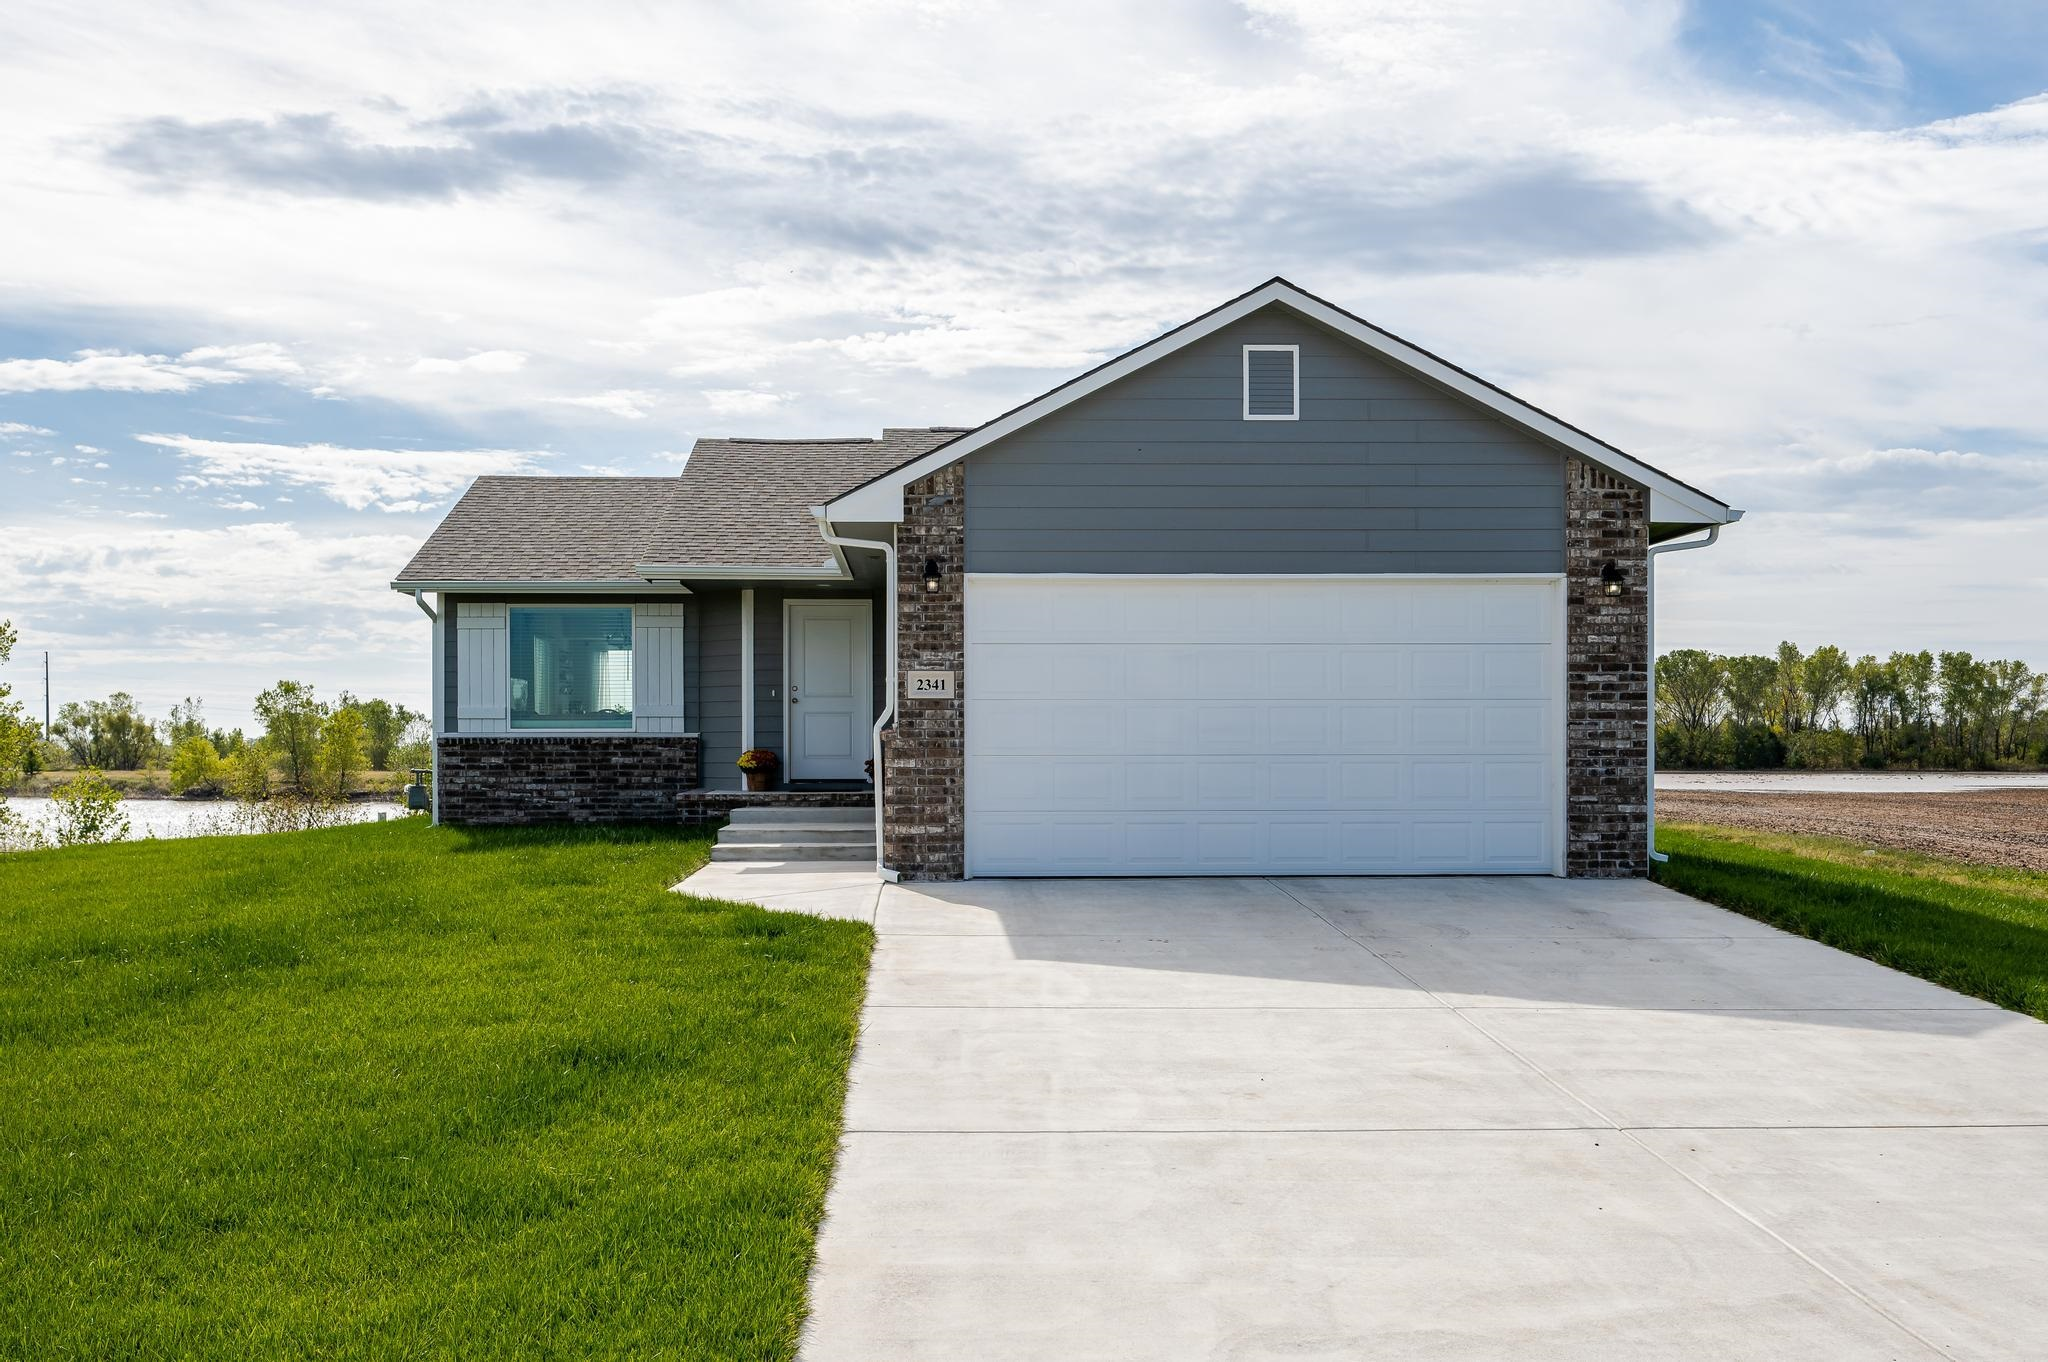 BRAND NEW CONSTRUCTION and AVAILABLE NOW!! Why wait 6-9 months, when you can move in now? Peacefully